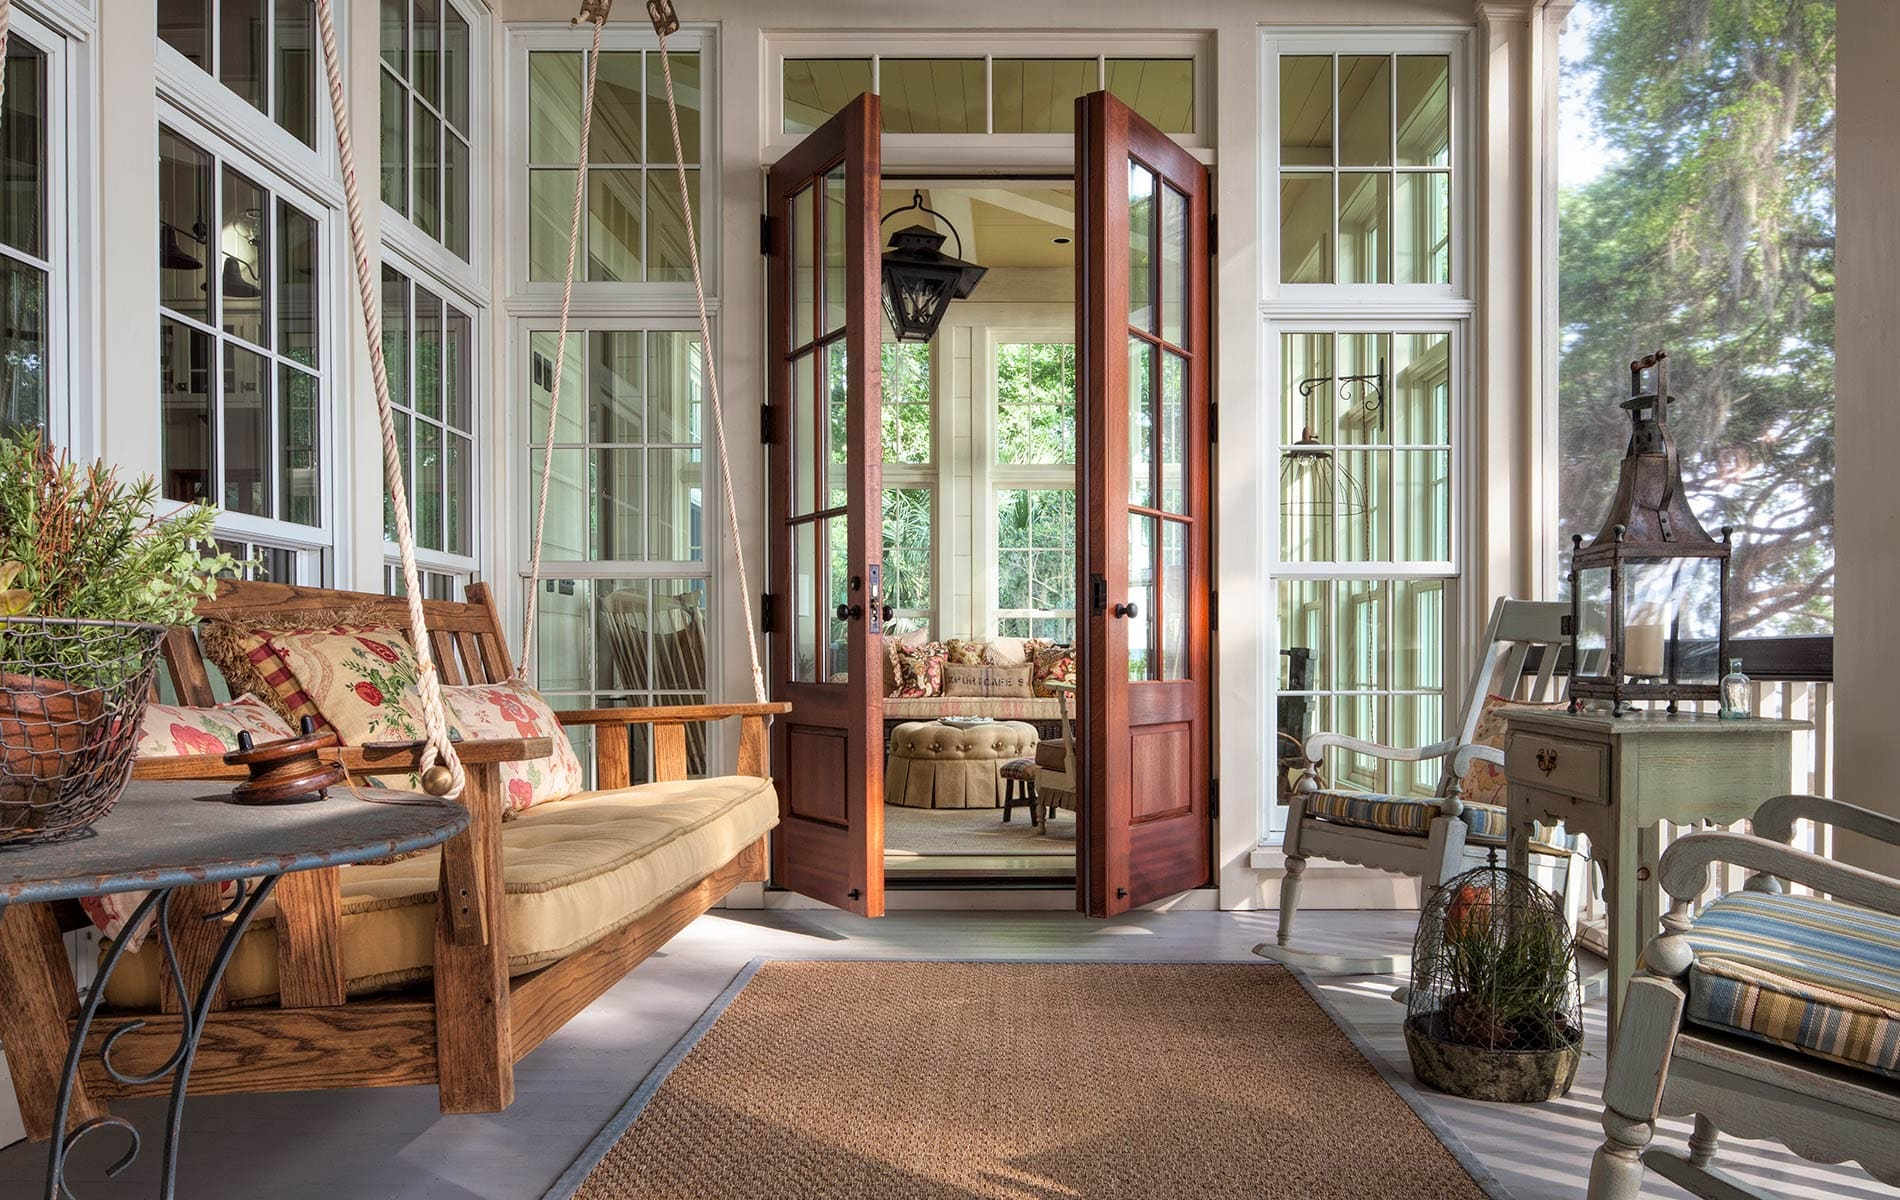 This charming screened back porch with a swing on Daufuskie Island near Hilton Head, South Carolina